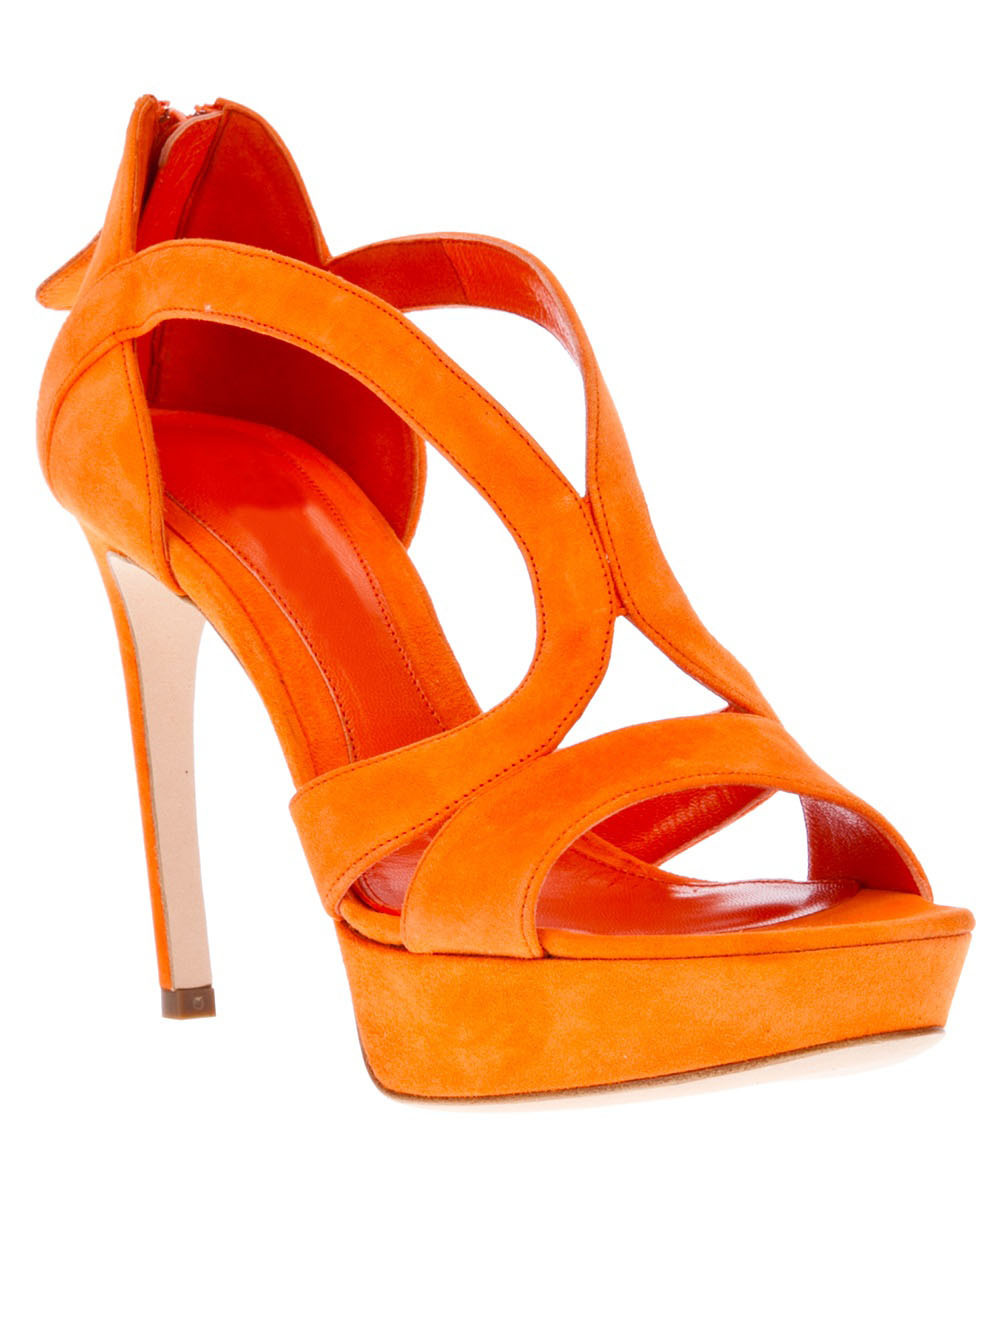 Orange Wedge Shoes Uk